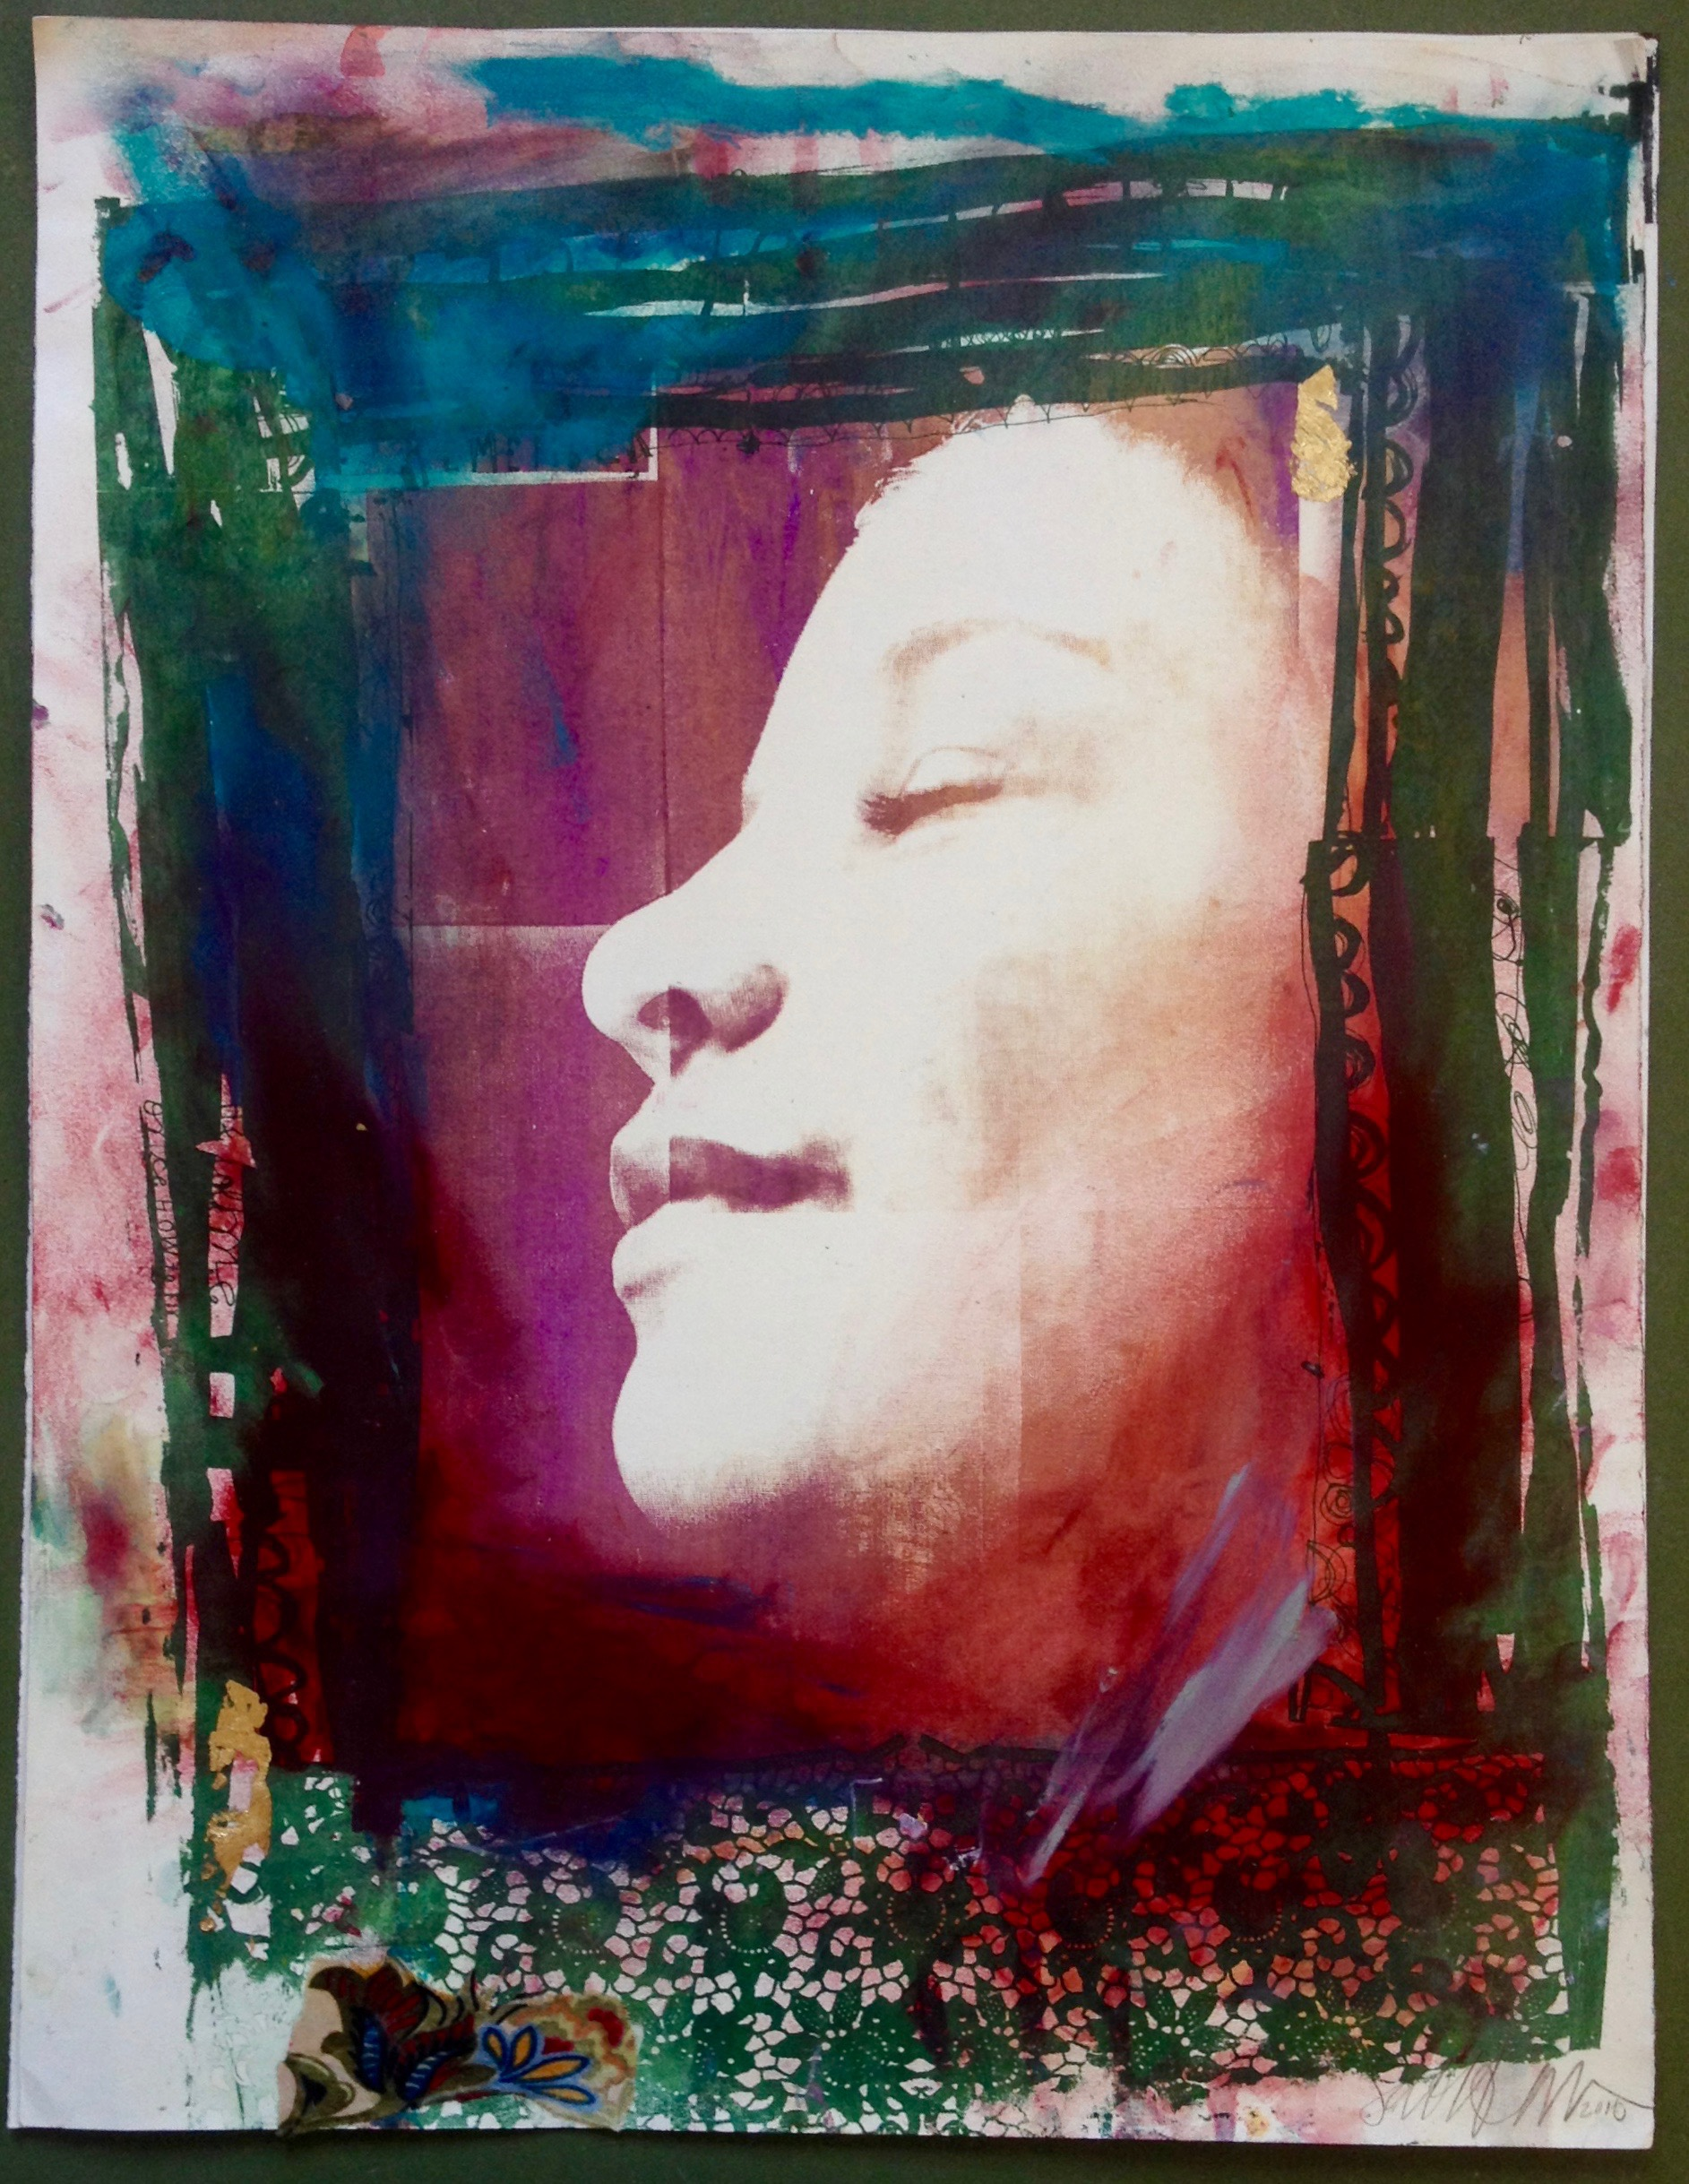 Part of a 2003 silkscreen series Sabrina made at the Mission Cultural Center